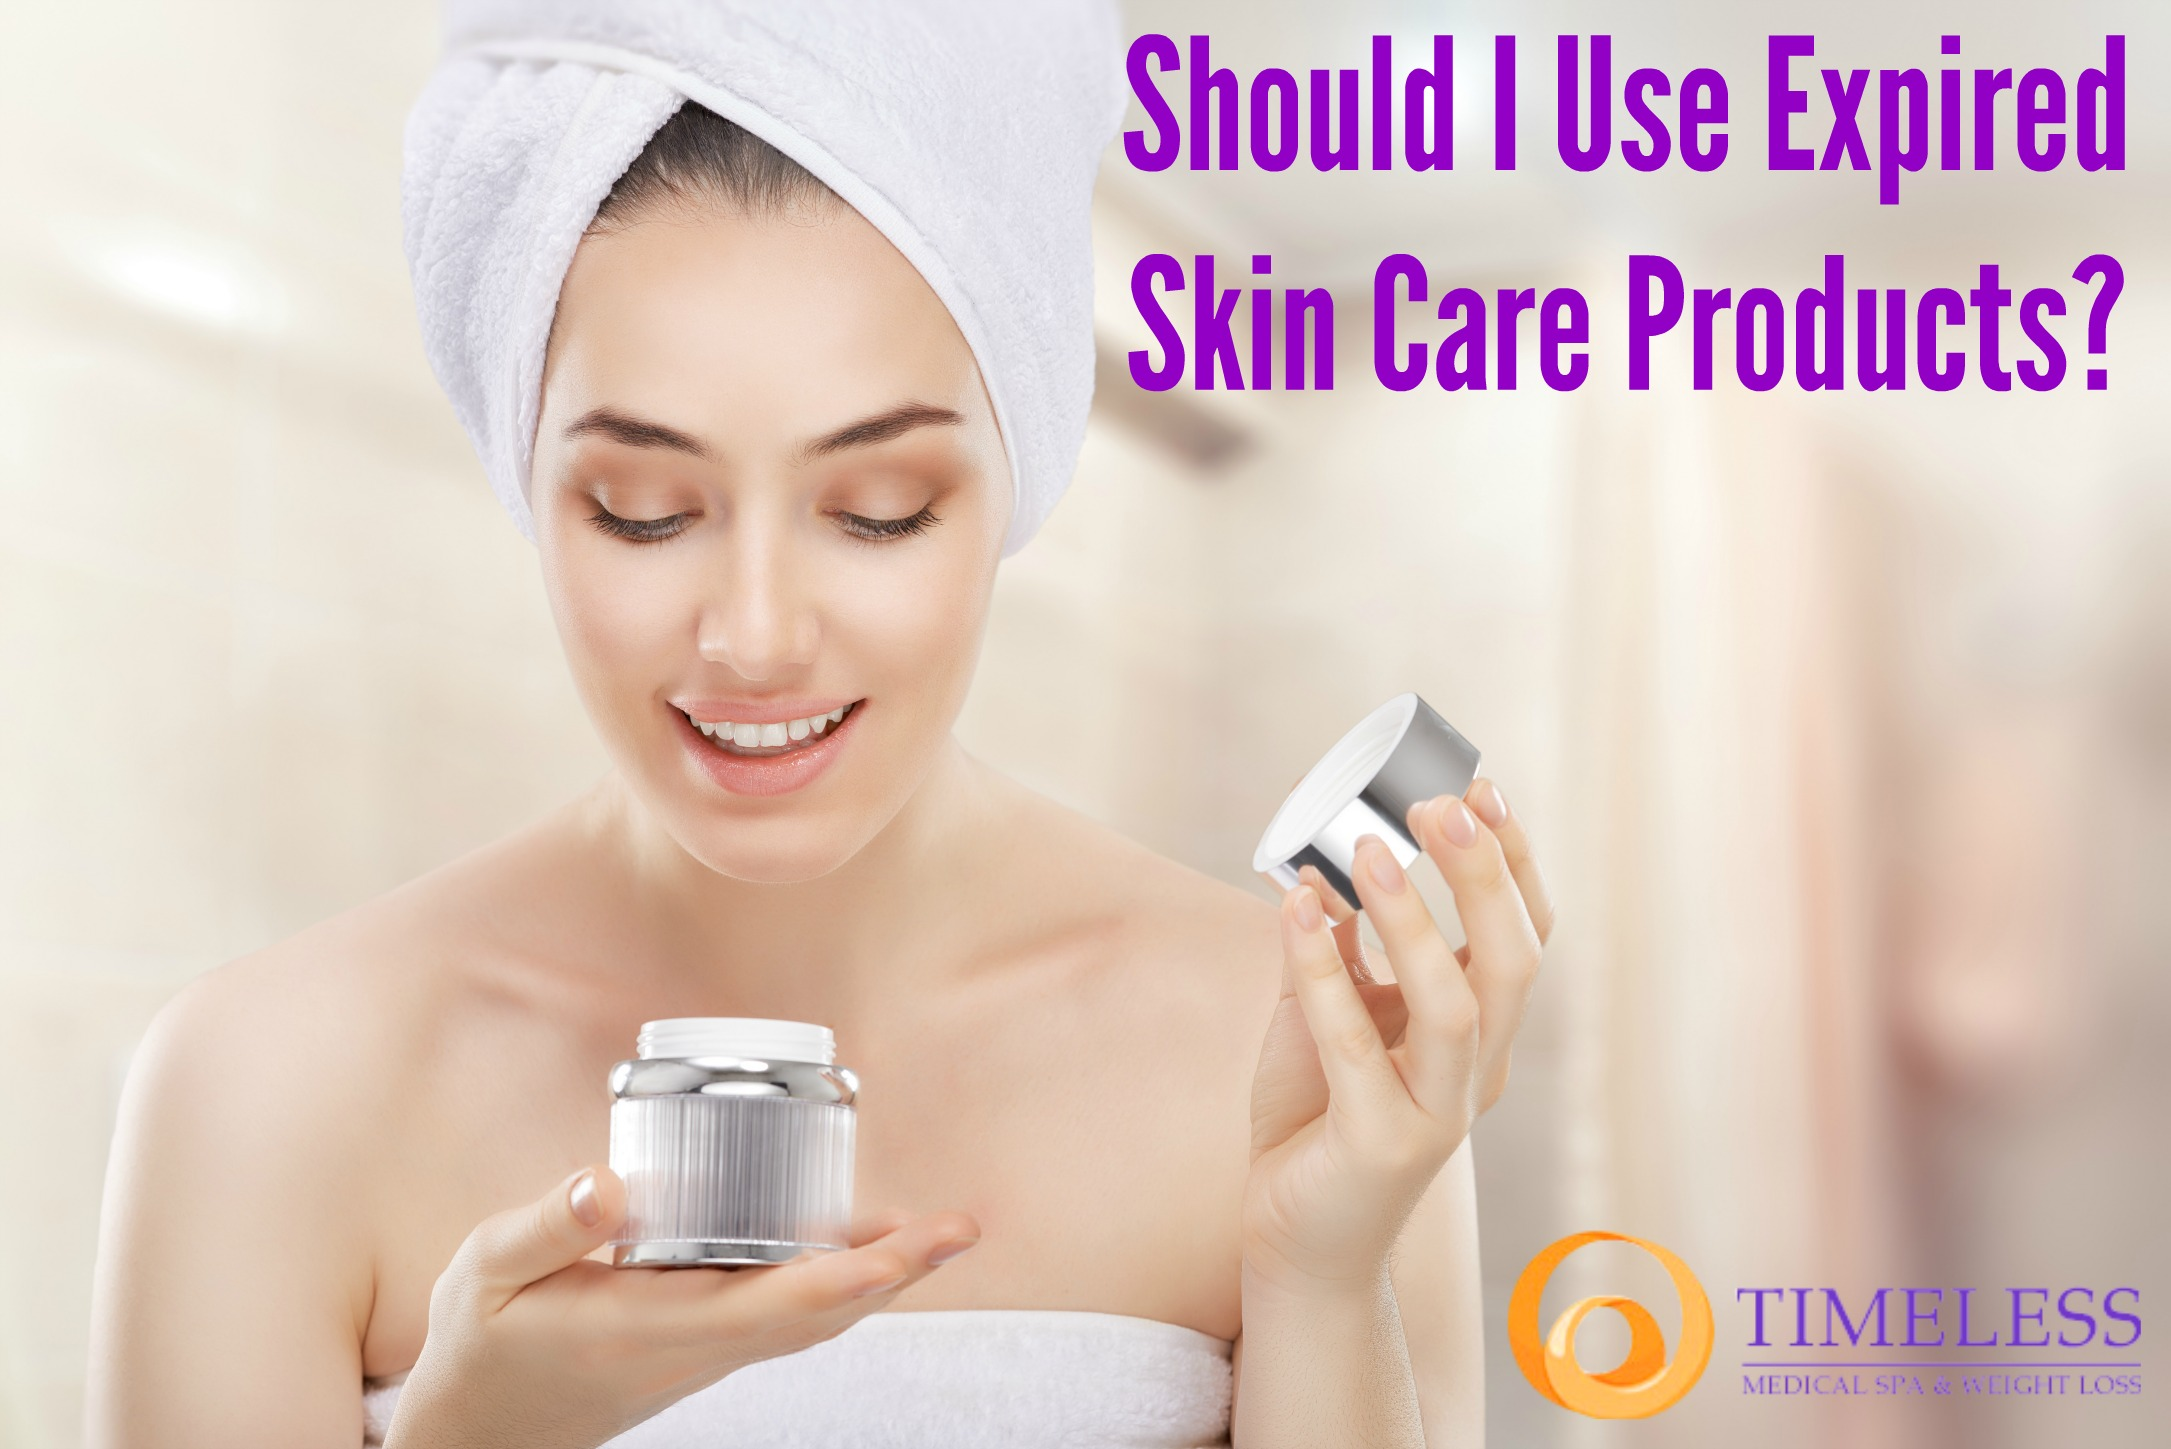 Should I Use Expired Skin Care Products? | Skin Care and Beauty Blog | TimeLess Medical Spa Ogden, UT